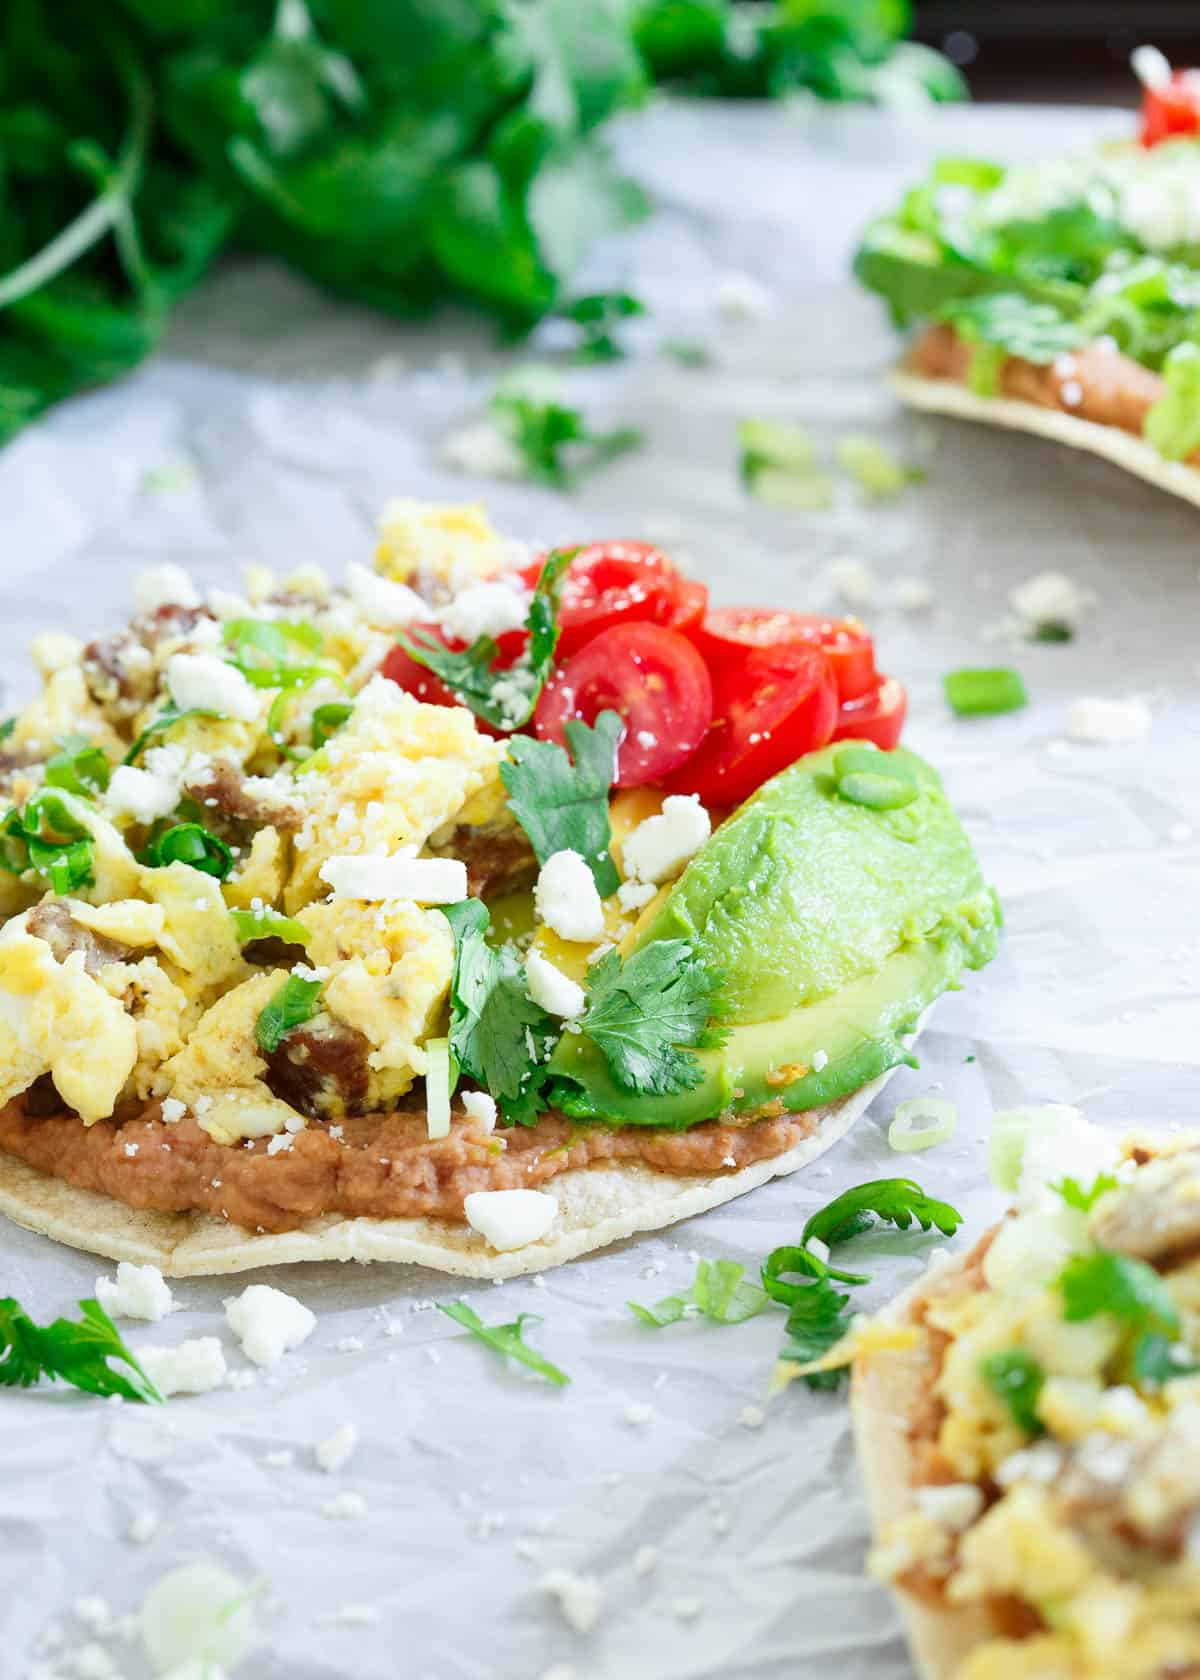 Chicken Sausage Breakfast Tostadas are a delicious savory start to the day with a bit of Mexican flair!